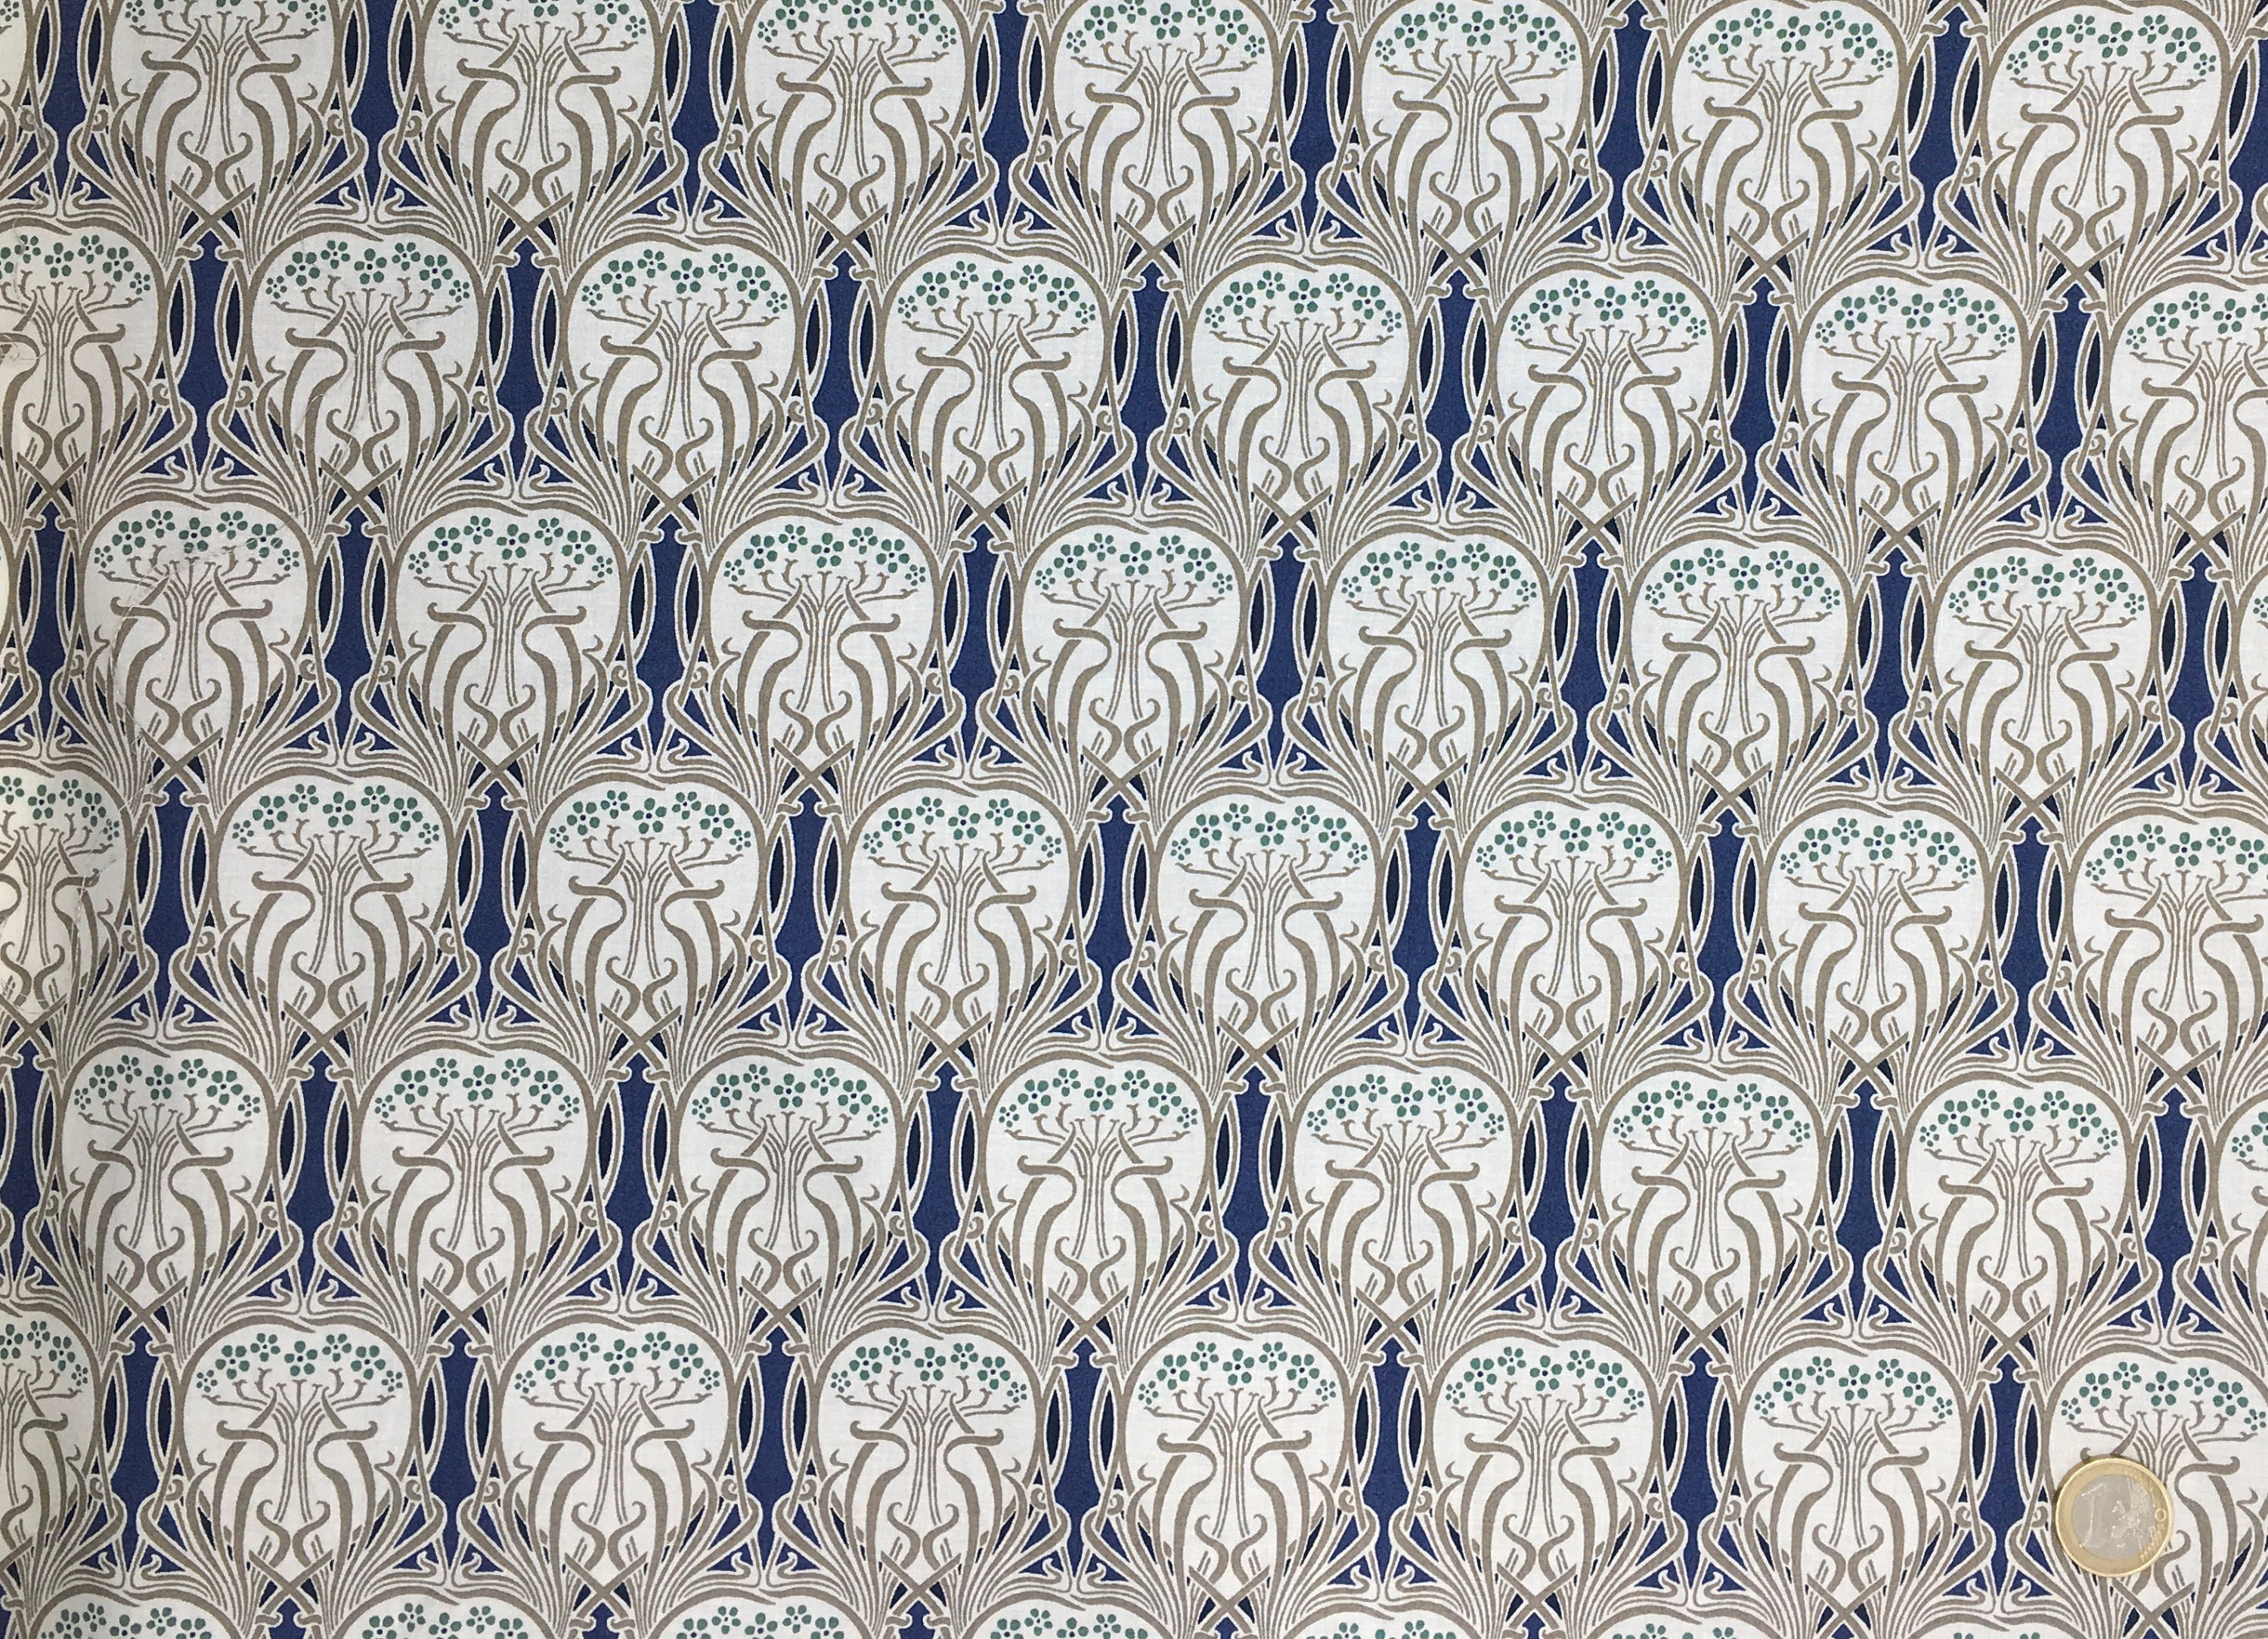 jugend style English Pima lawn cotton fabric priced per 25cm